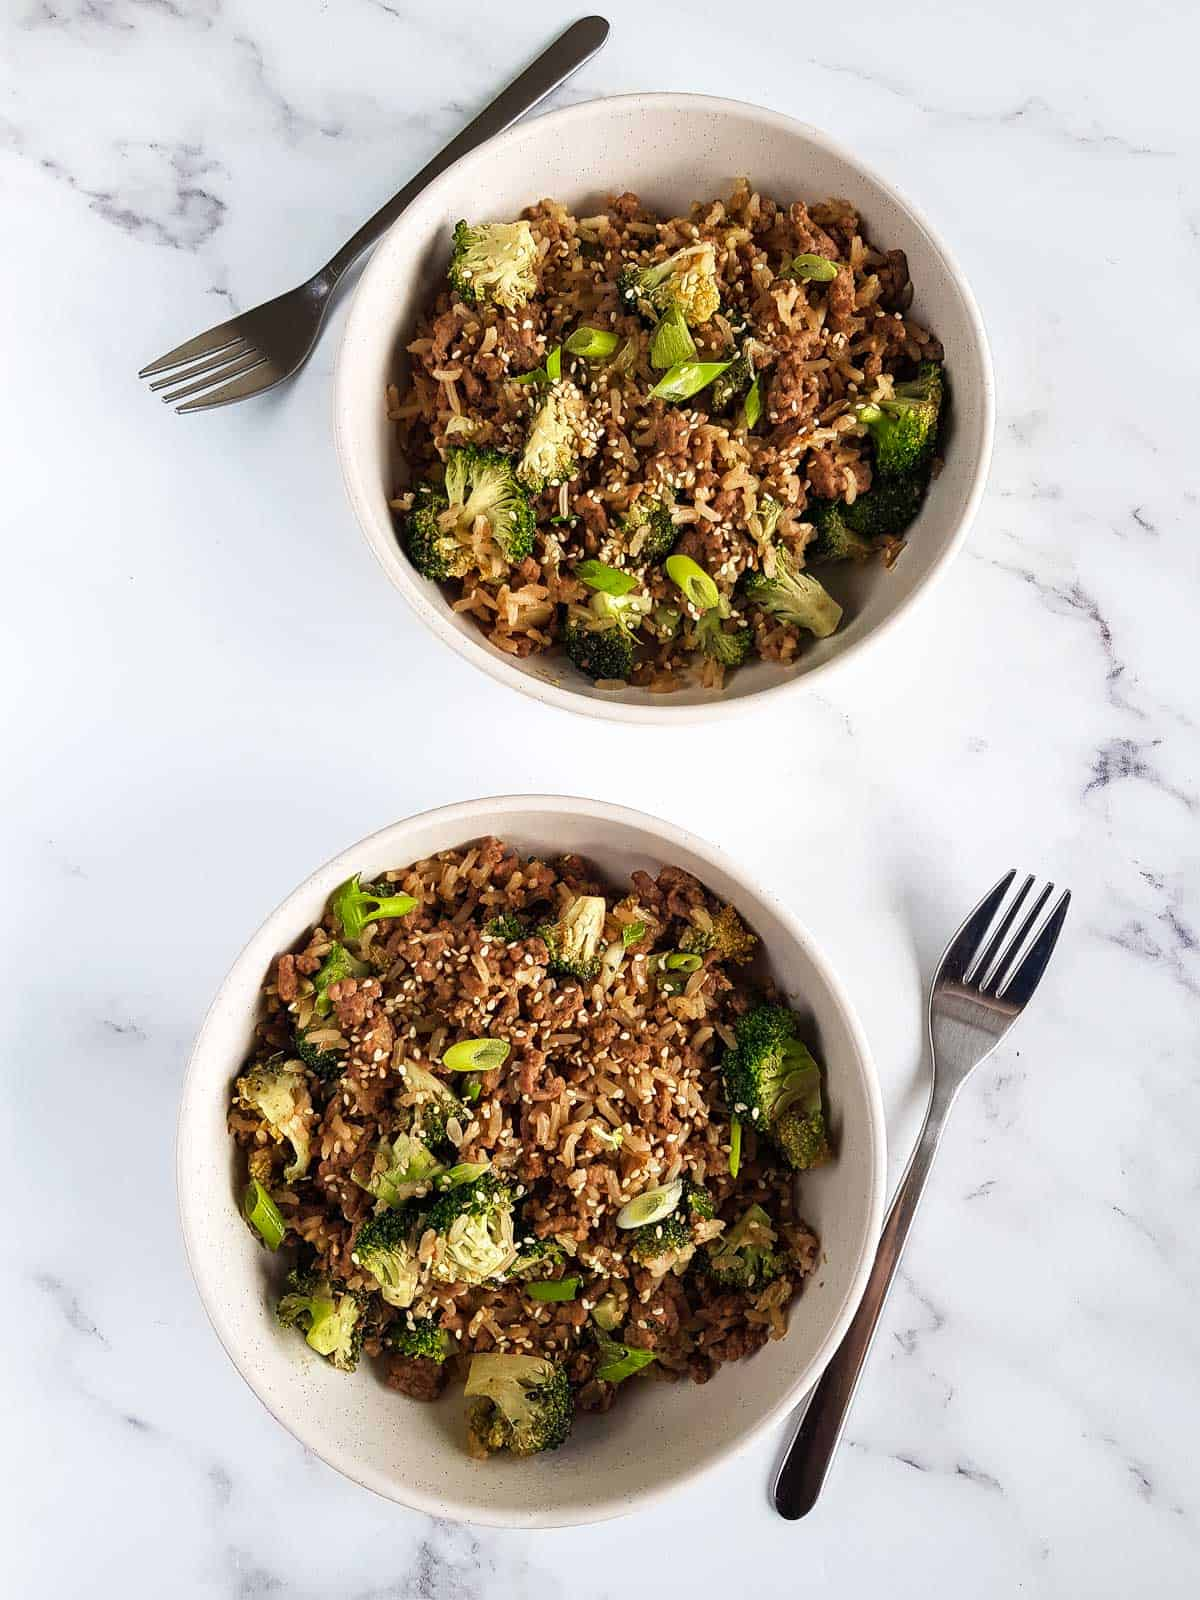 Two bowls of ground beef and broccoli on a table, with forks next to them.